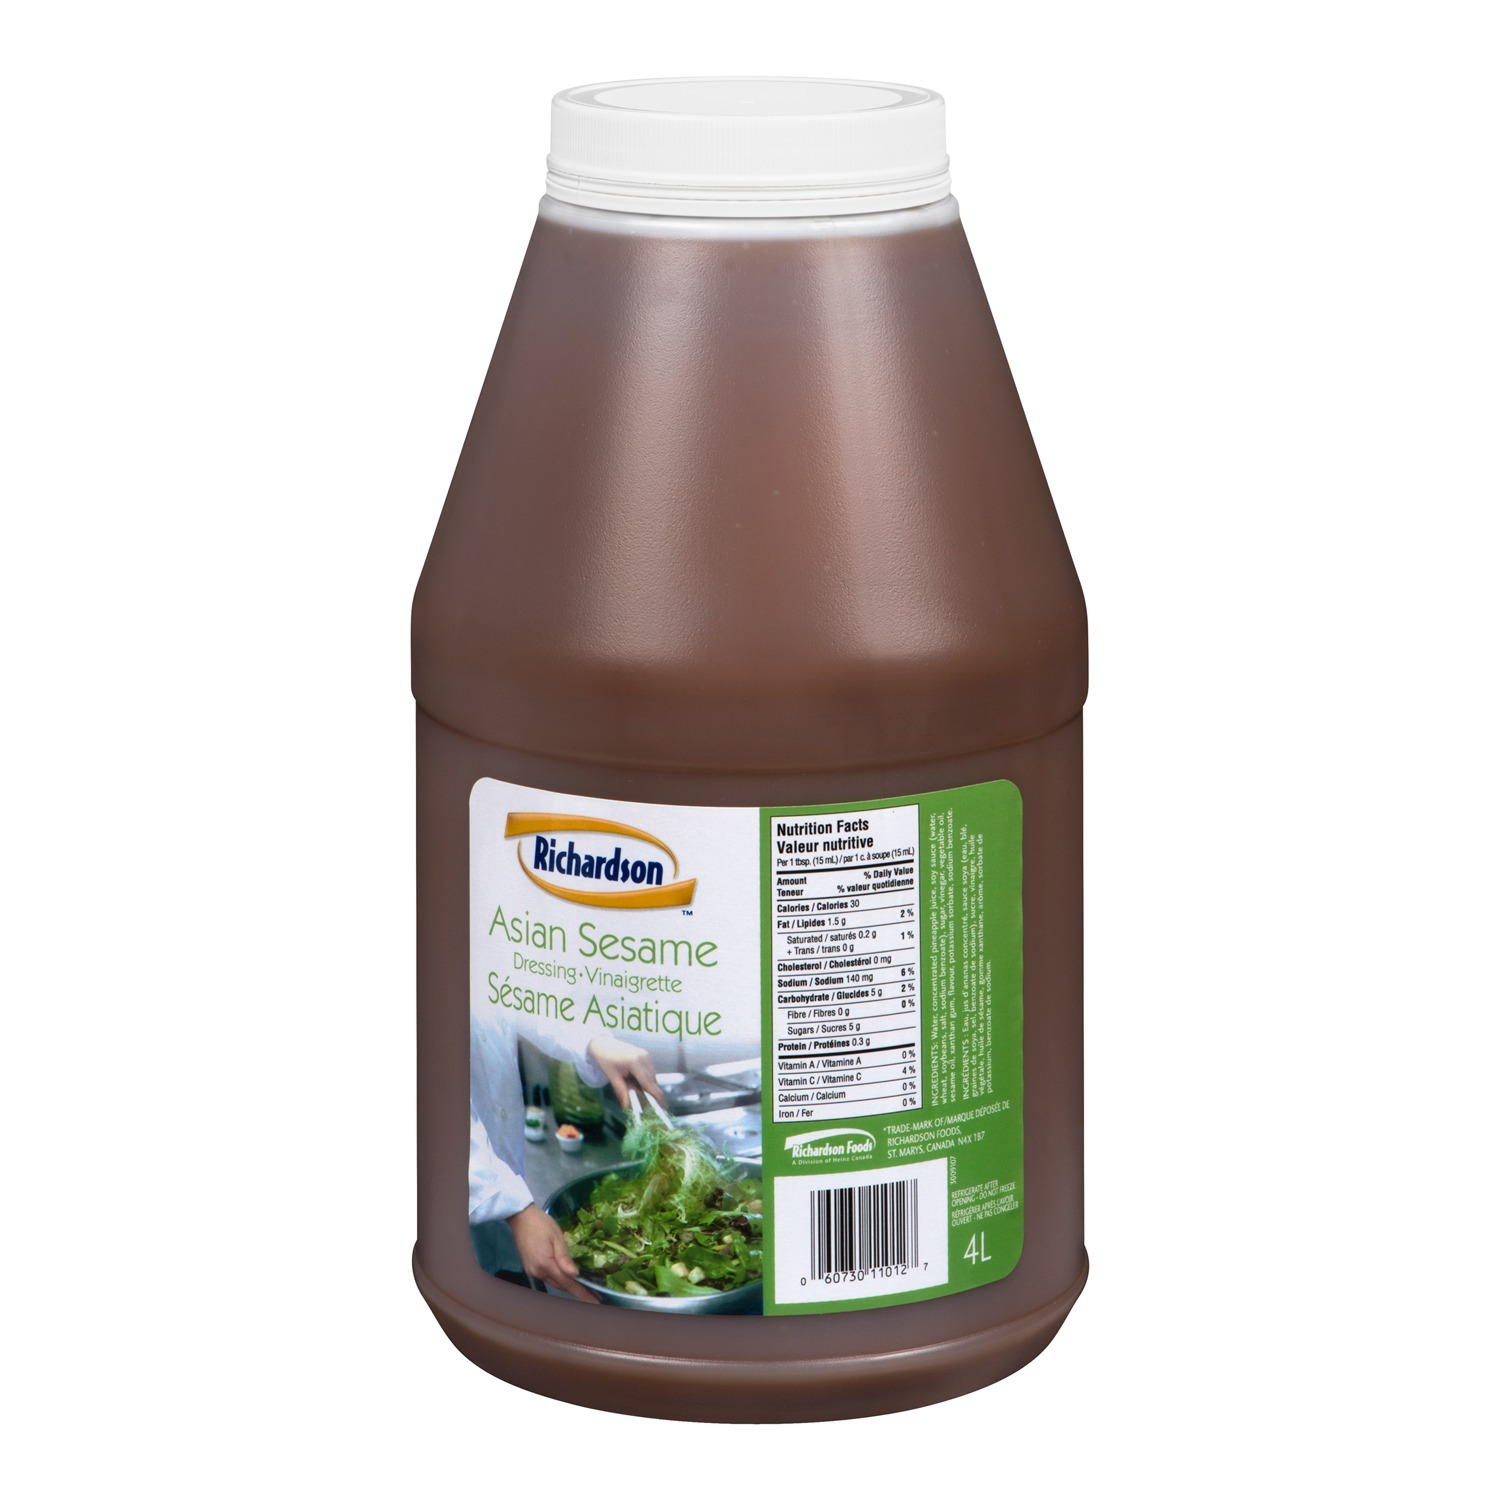 RICHARDSON Asian Sesame Dressing 4lb 2